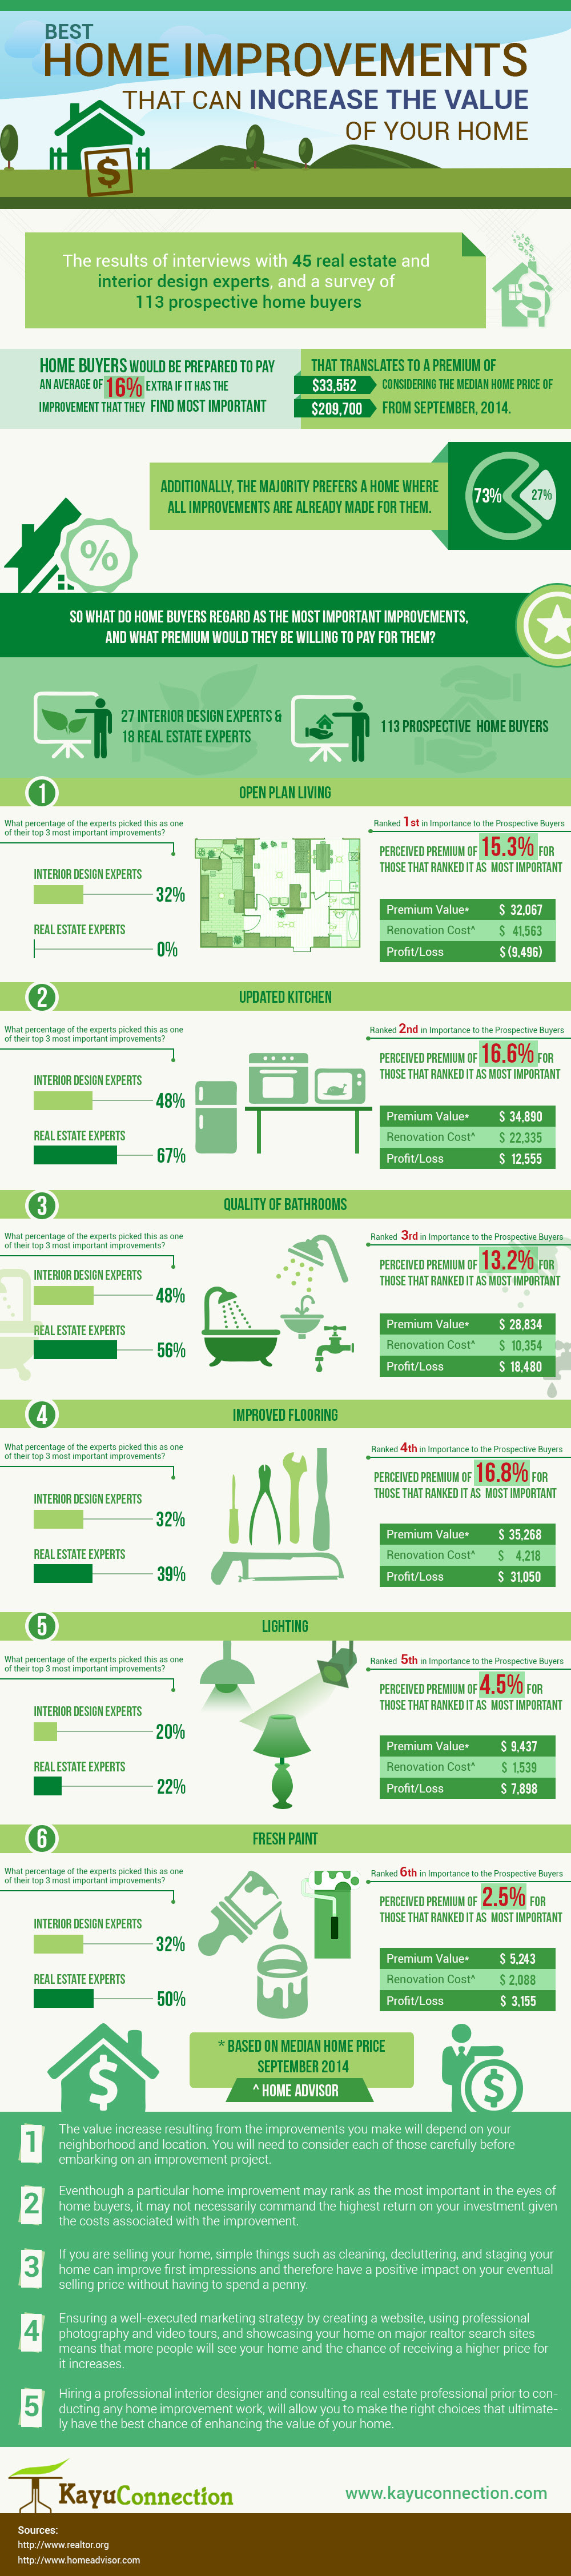 Infographic: Best Home Improvements to Increase the Value of Your Home